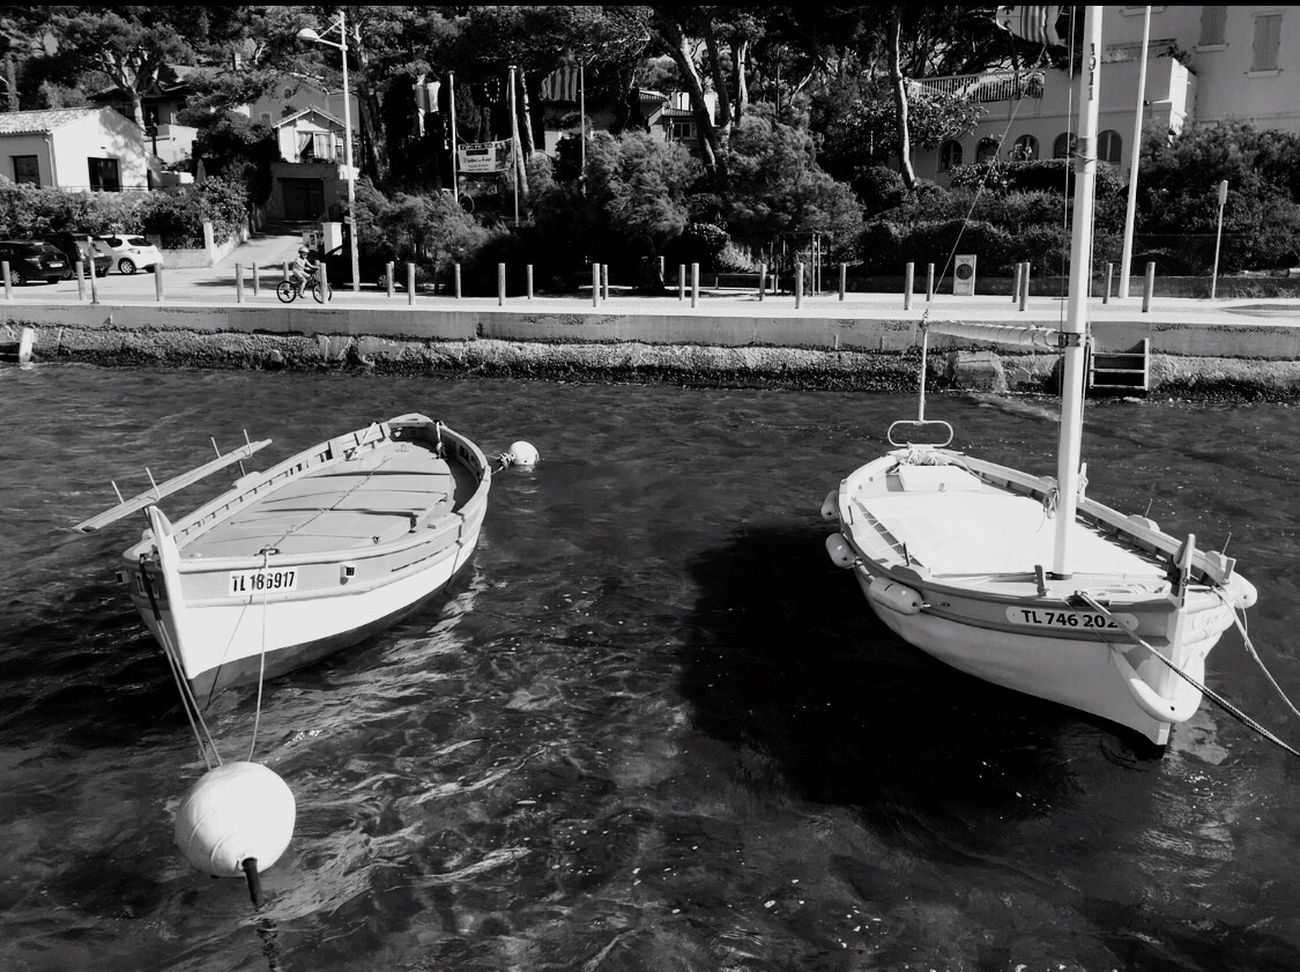 Water Nautical Vessel Mode Of Transport Pedal Boat Nature Sanary Sur Mer